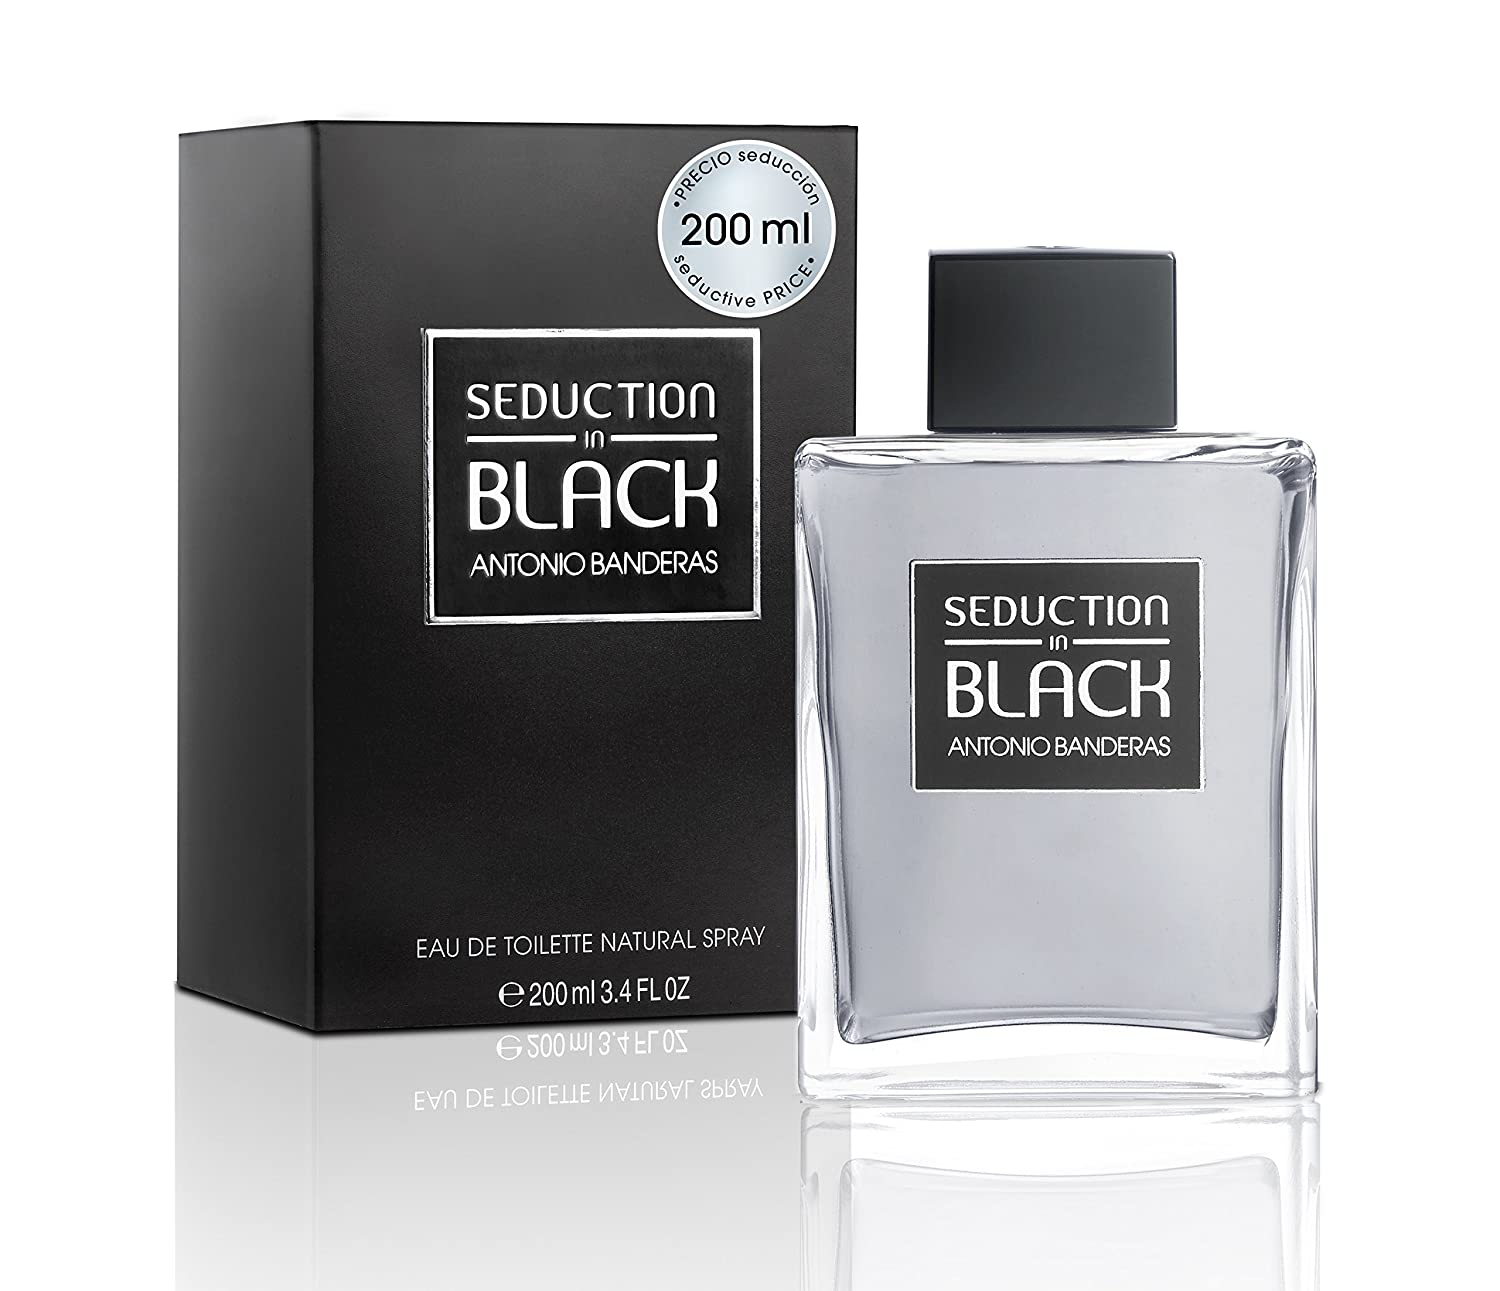 Antonio Banderas Seduction In Black - Black Ab - 200 ml: Amazon.es: Belleza